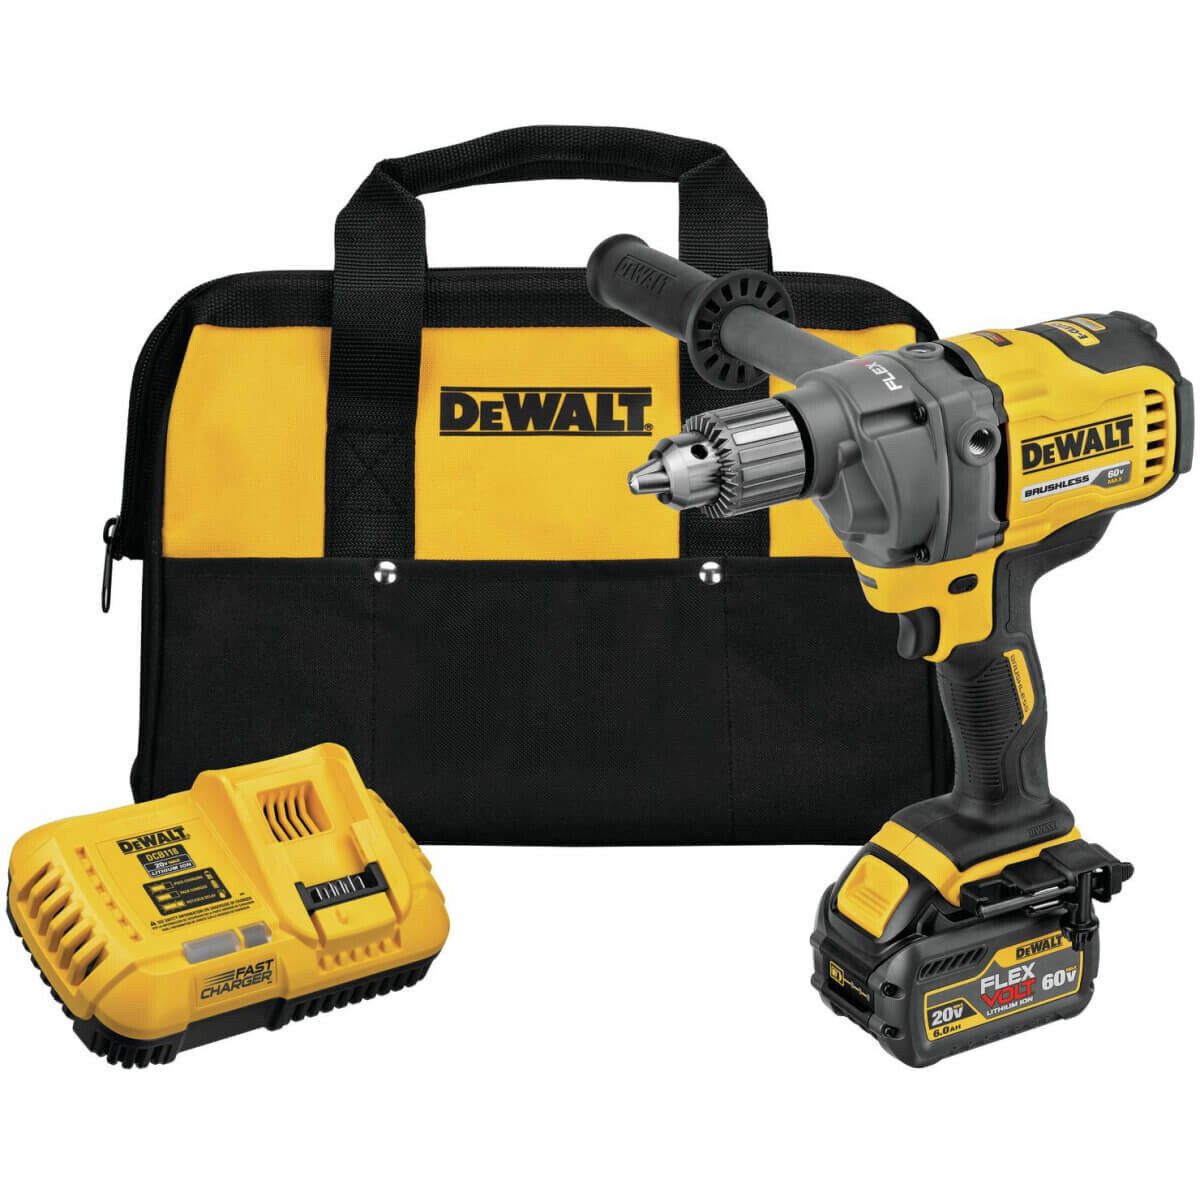 Dewalt DCD130 60V MAX Mixer/Drill with Battery and Carrying Bag